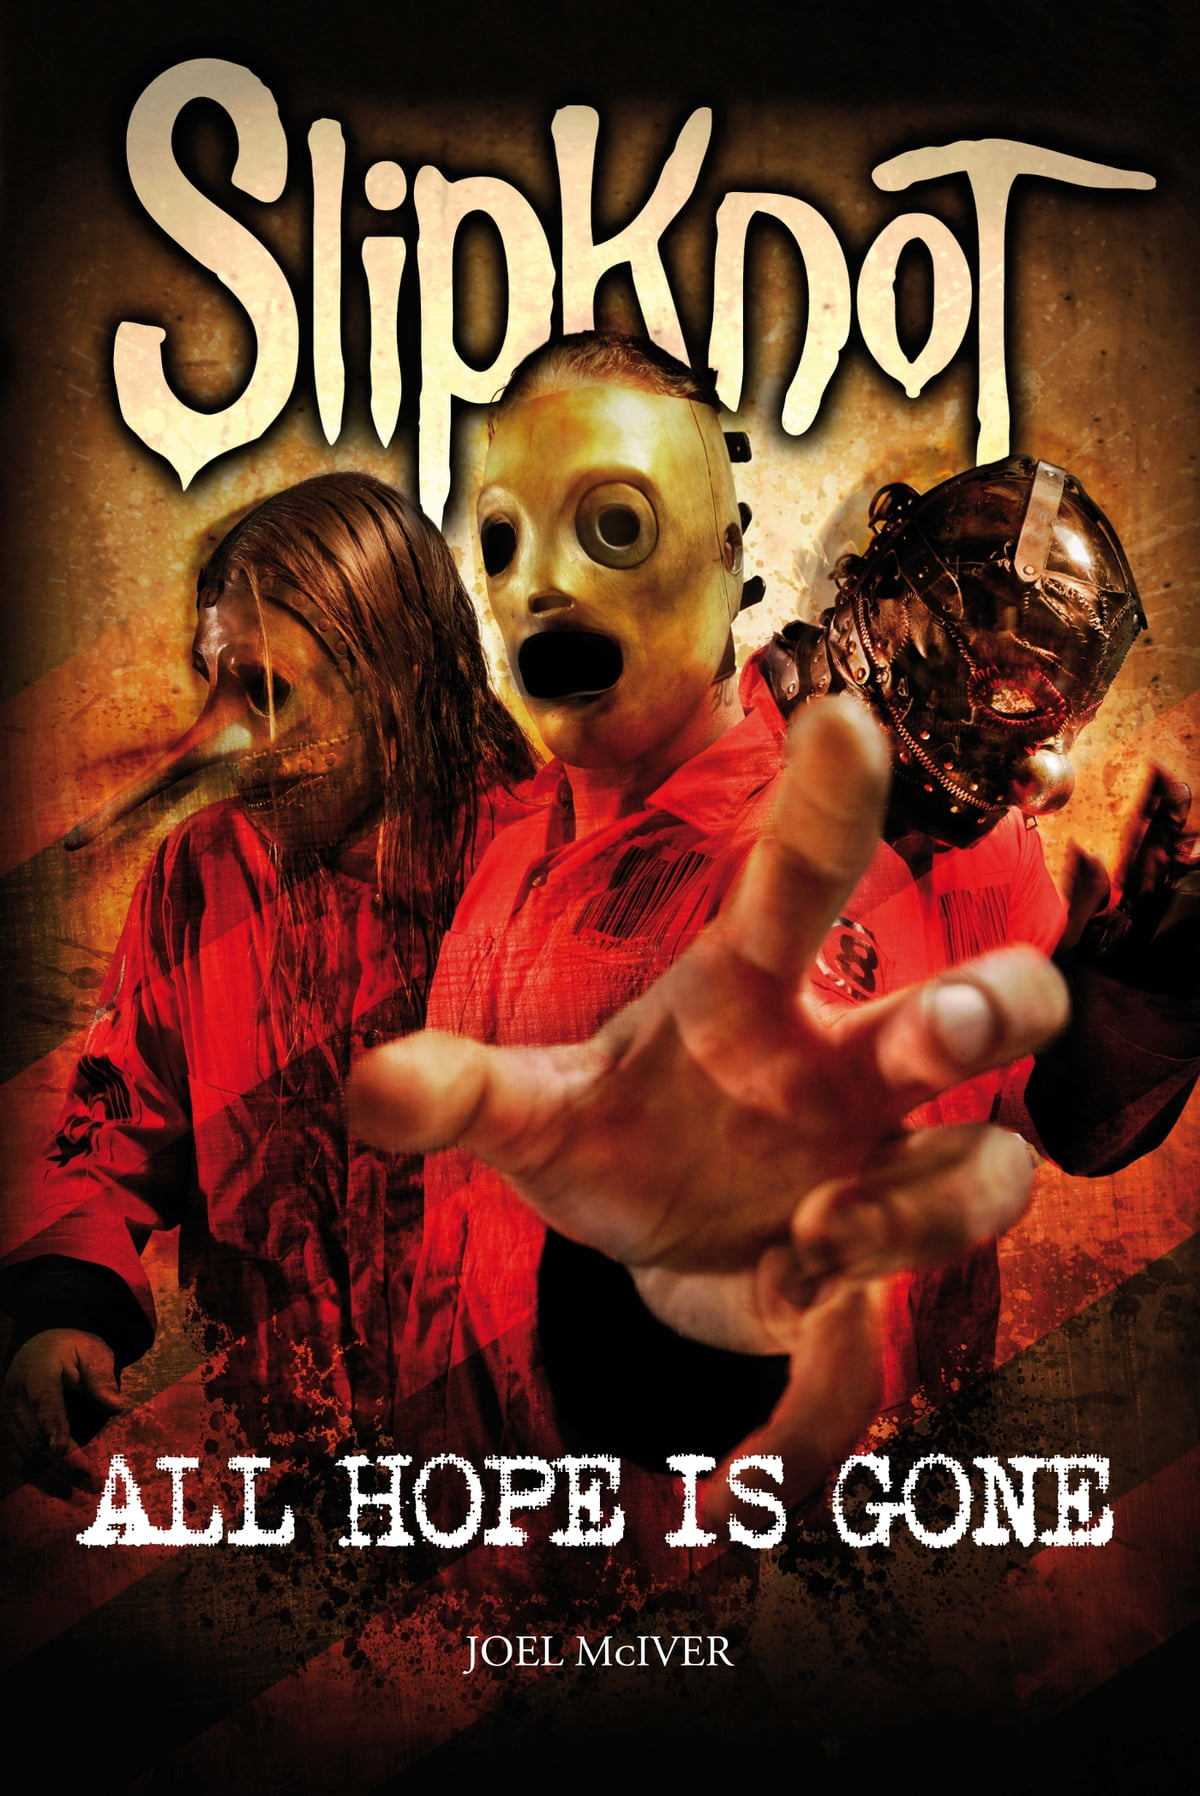 slipknot all hope is gone joel mciver 9780857127723 楽天kobo